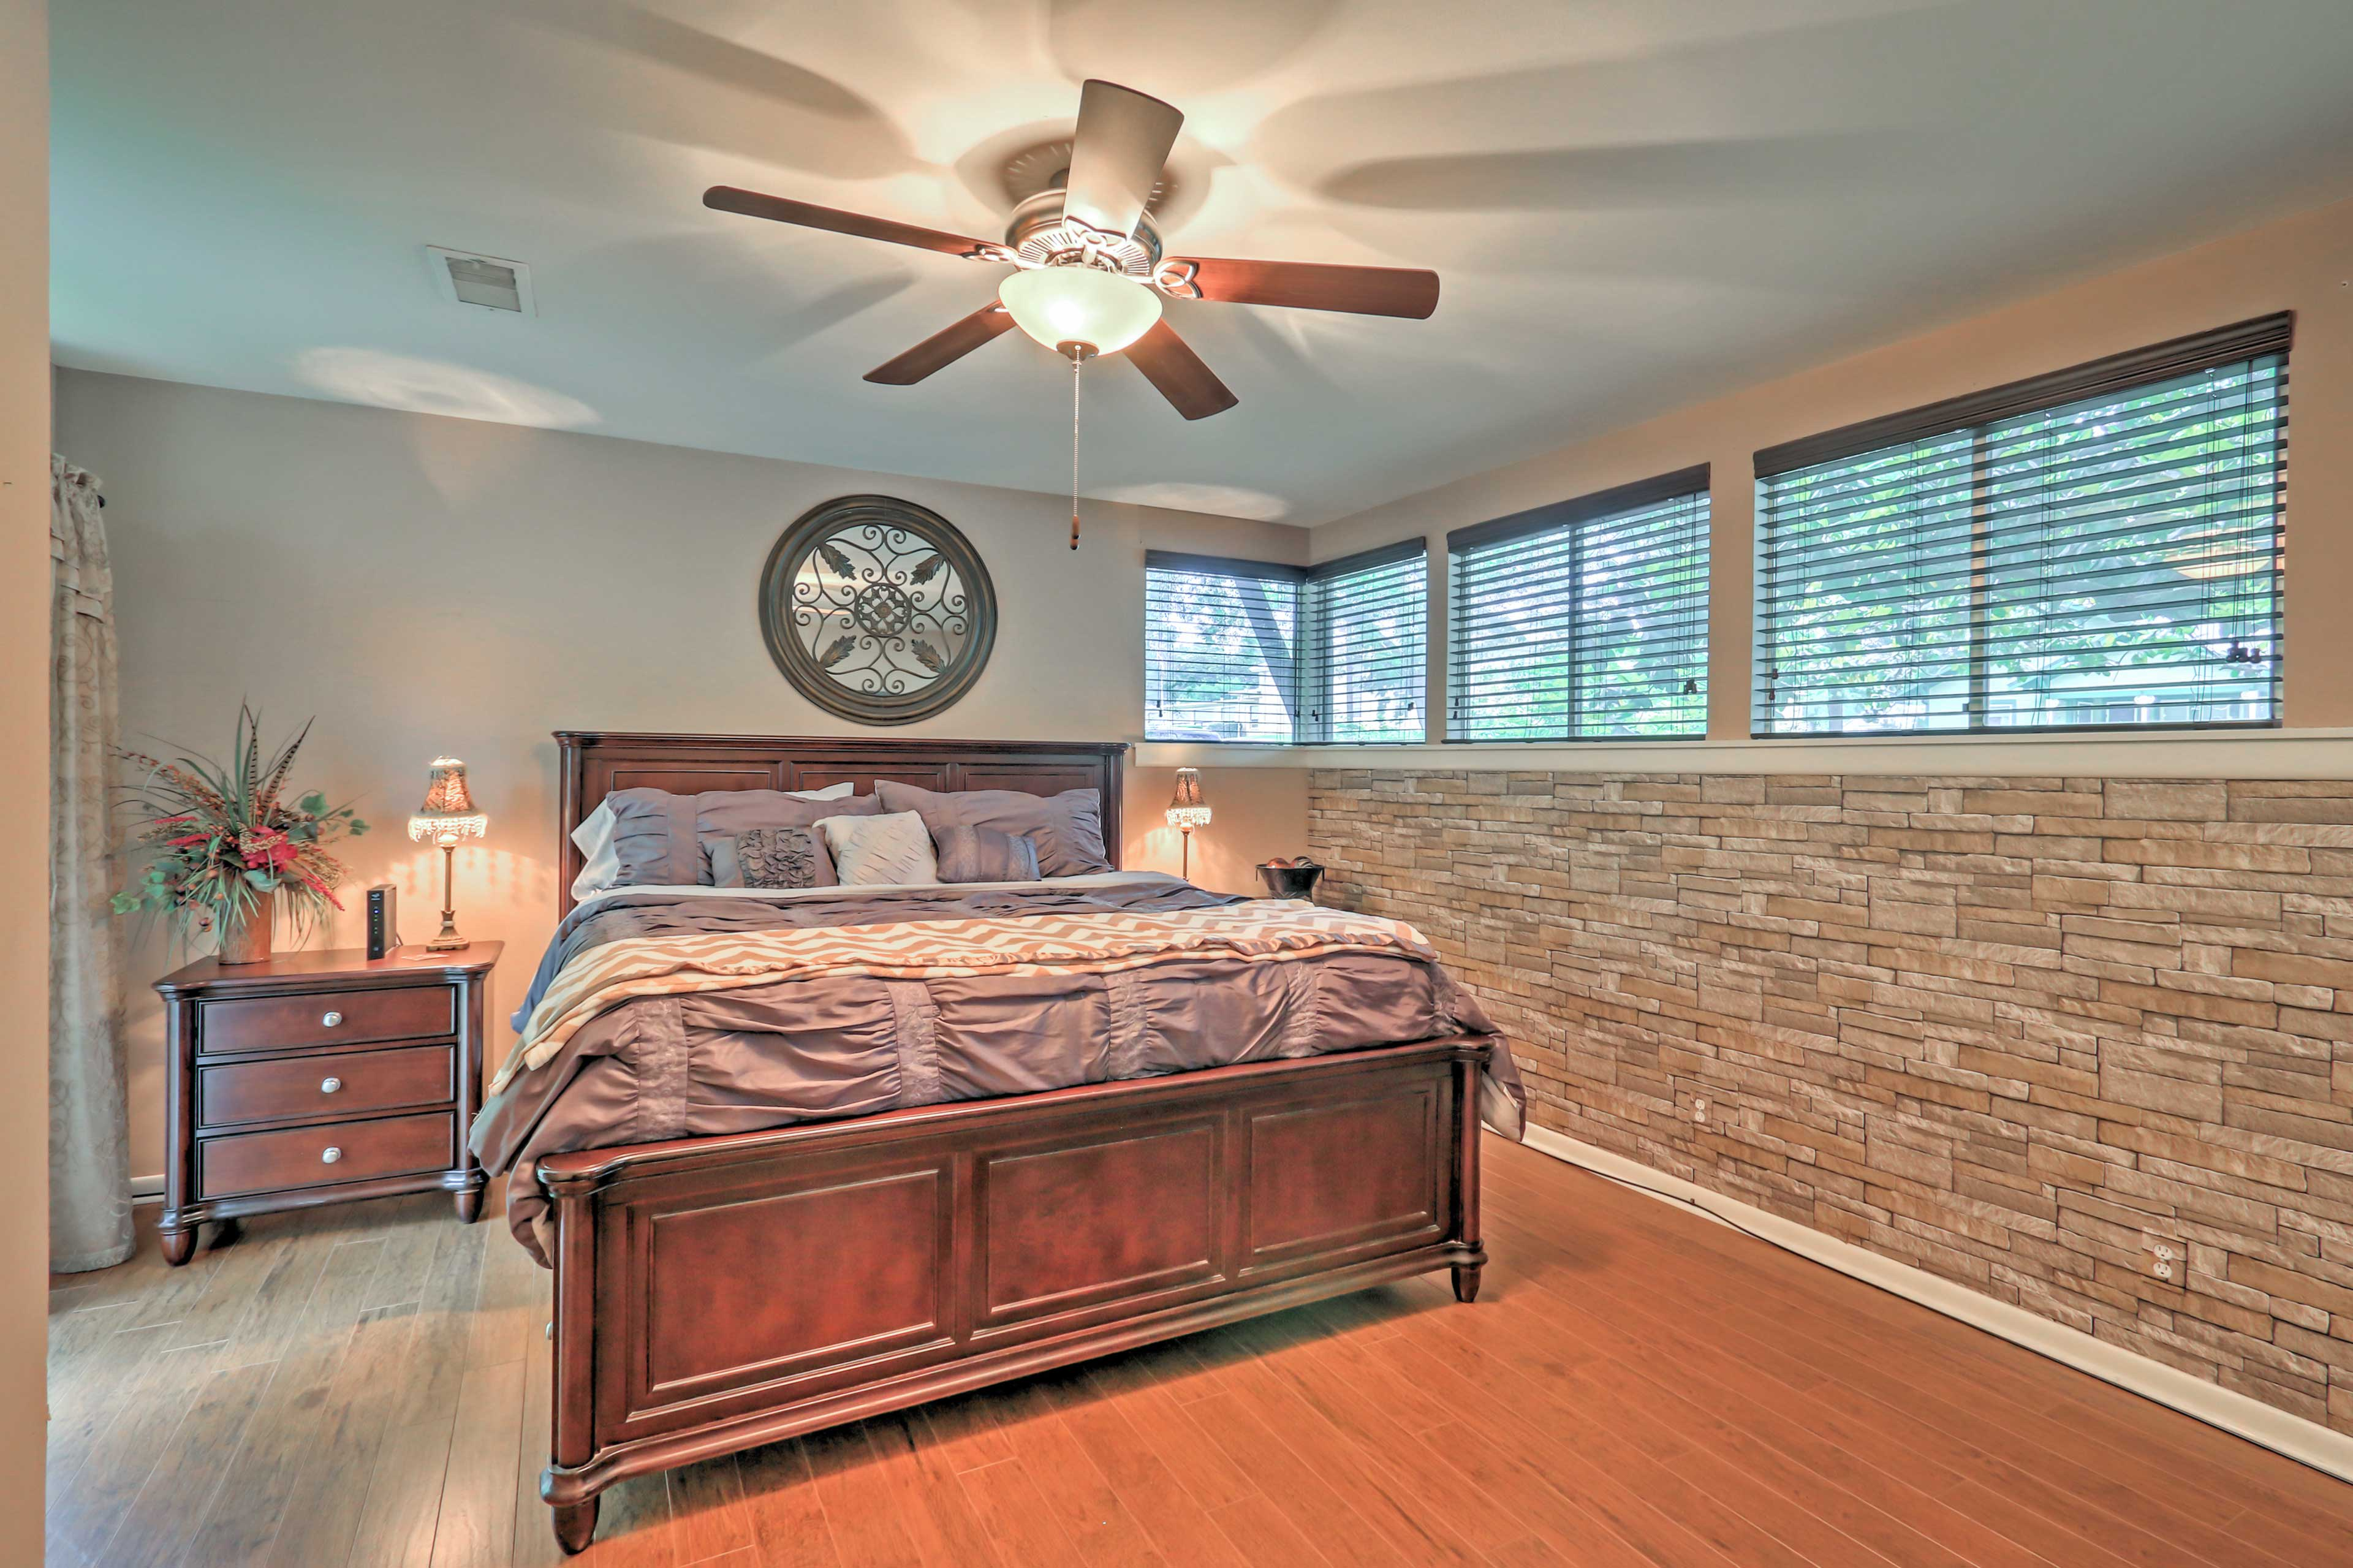 The master bedroom features a king bed and direct access to outside.